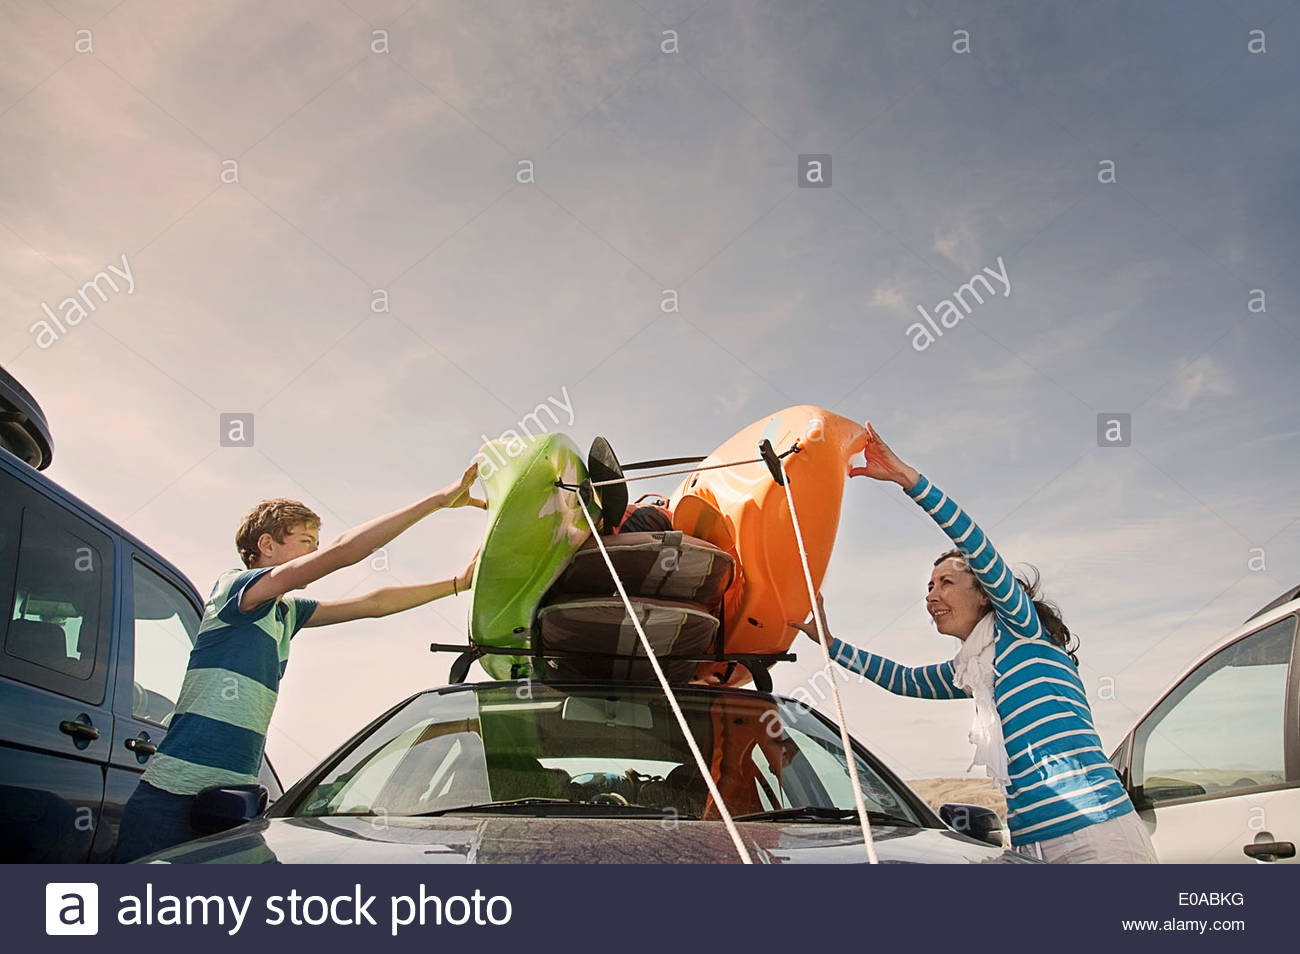 Mother and son stacking kayaks on top of car - Stock Image